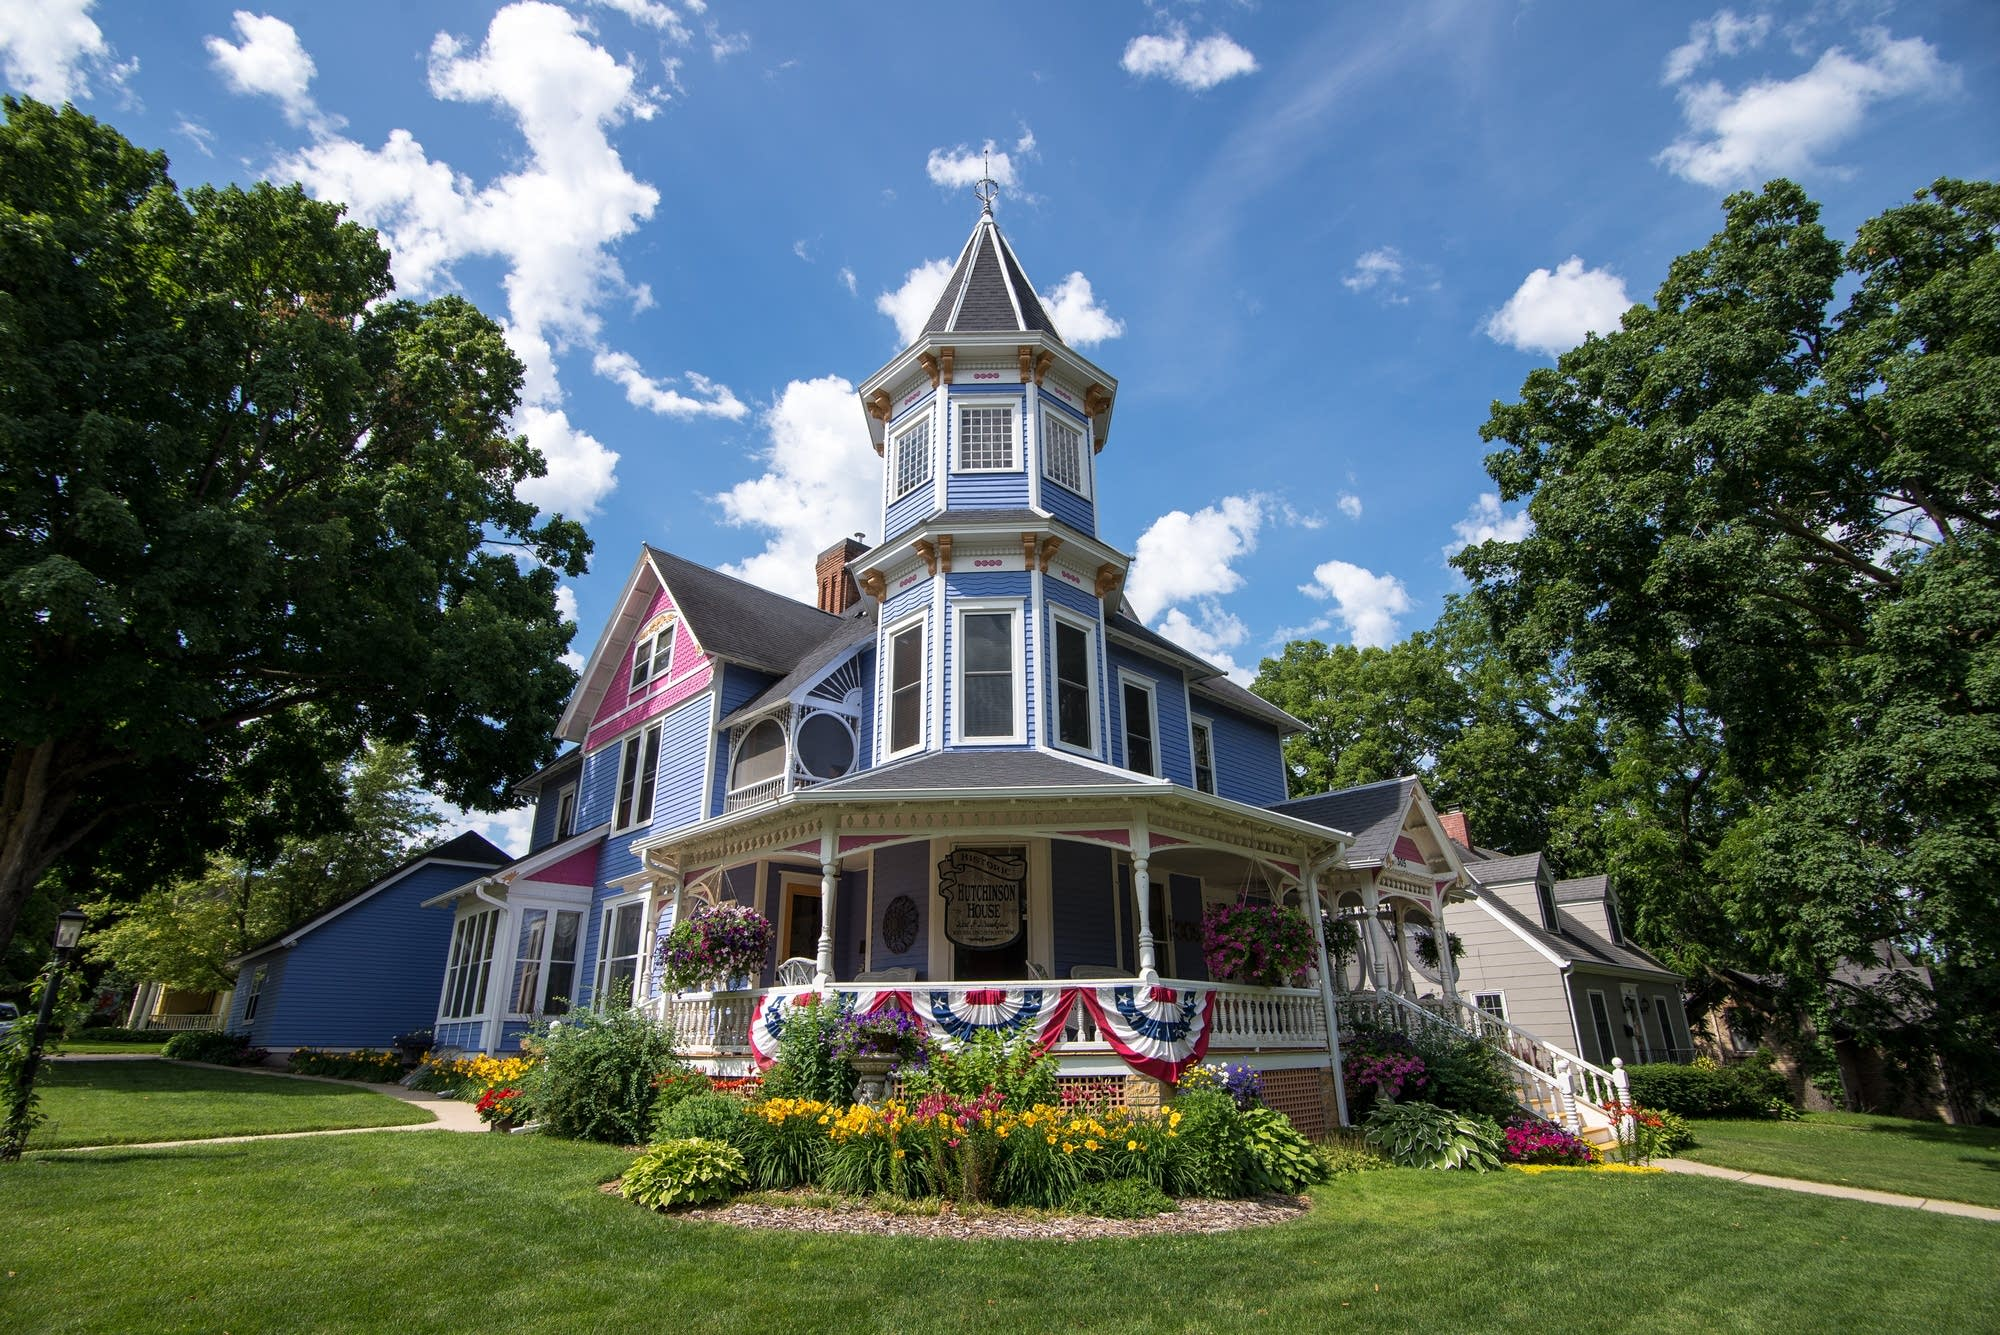 The sun shines on the Historic Hutchinson House Bed and Breakfast.